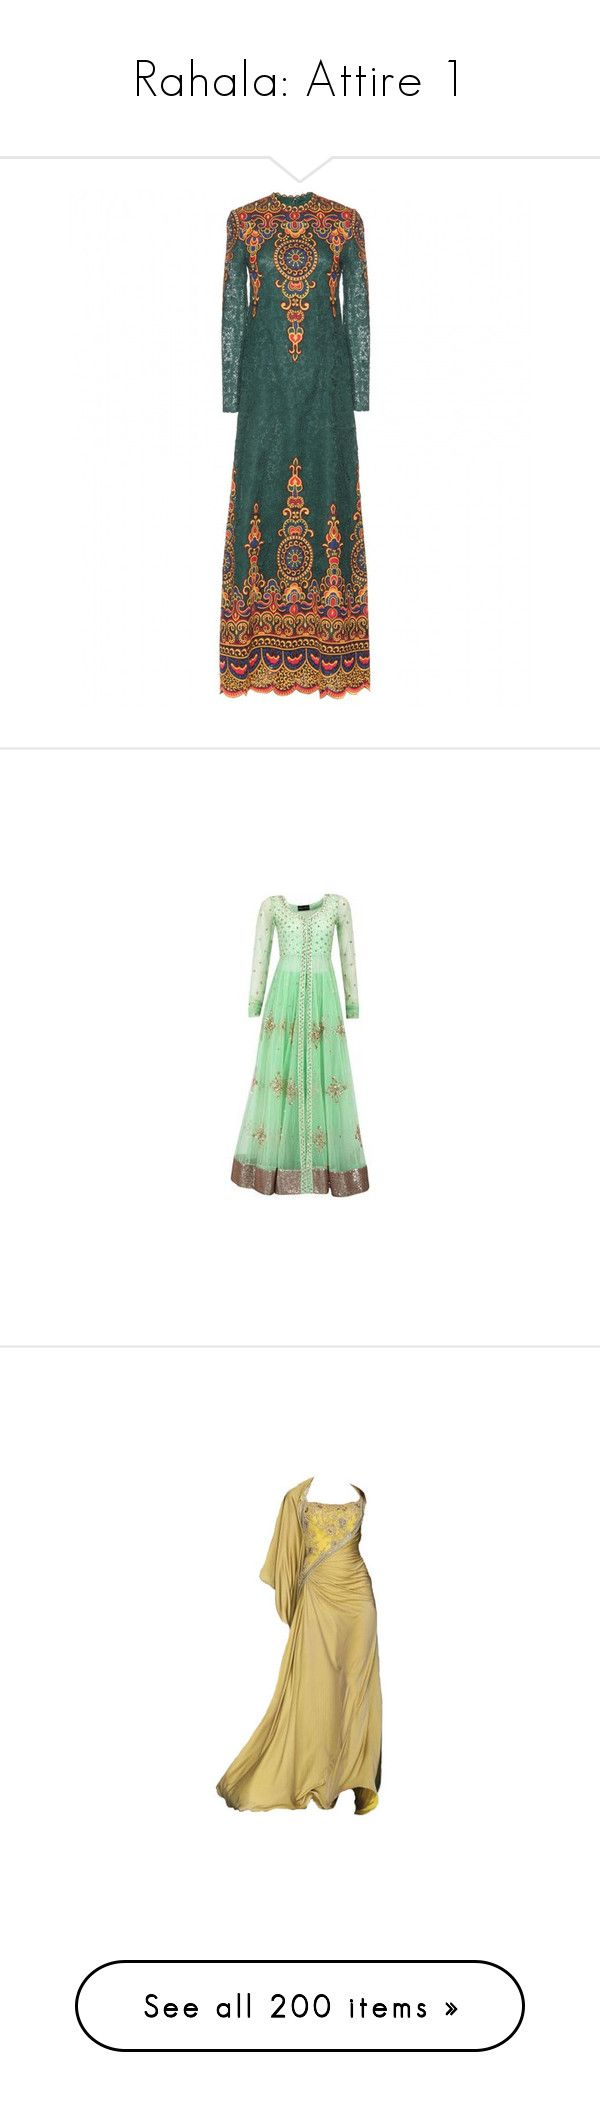 """""""Rahala: Attire 1"""" by hetra-b ❤ liked on Polyvore featuring dresses, gowns, valentino, green dress, lace ball gown, green gown, lace gown, green evening dress, gown and long dress"""